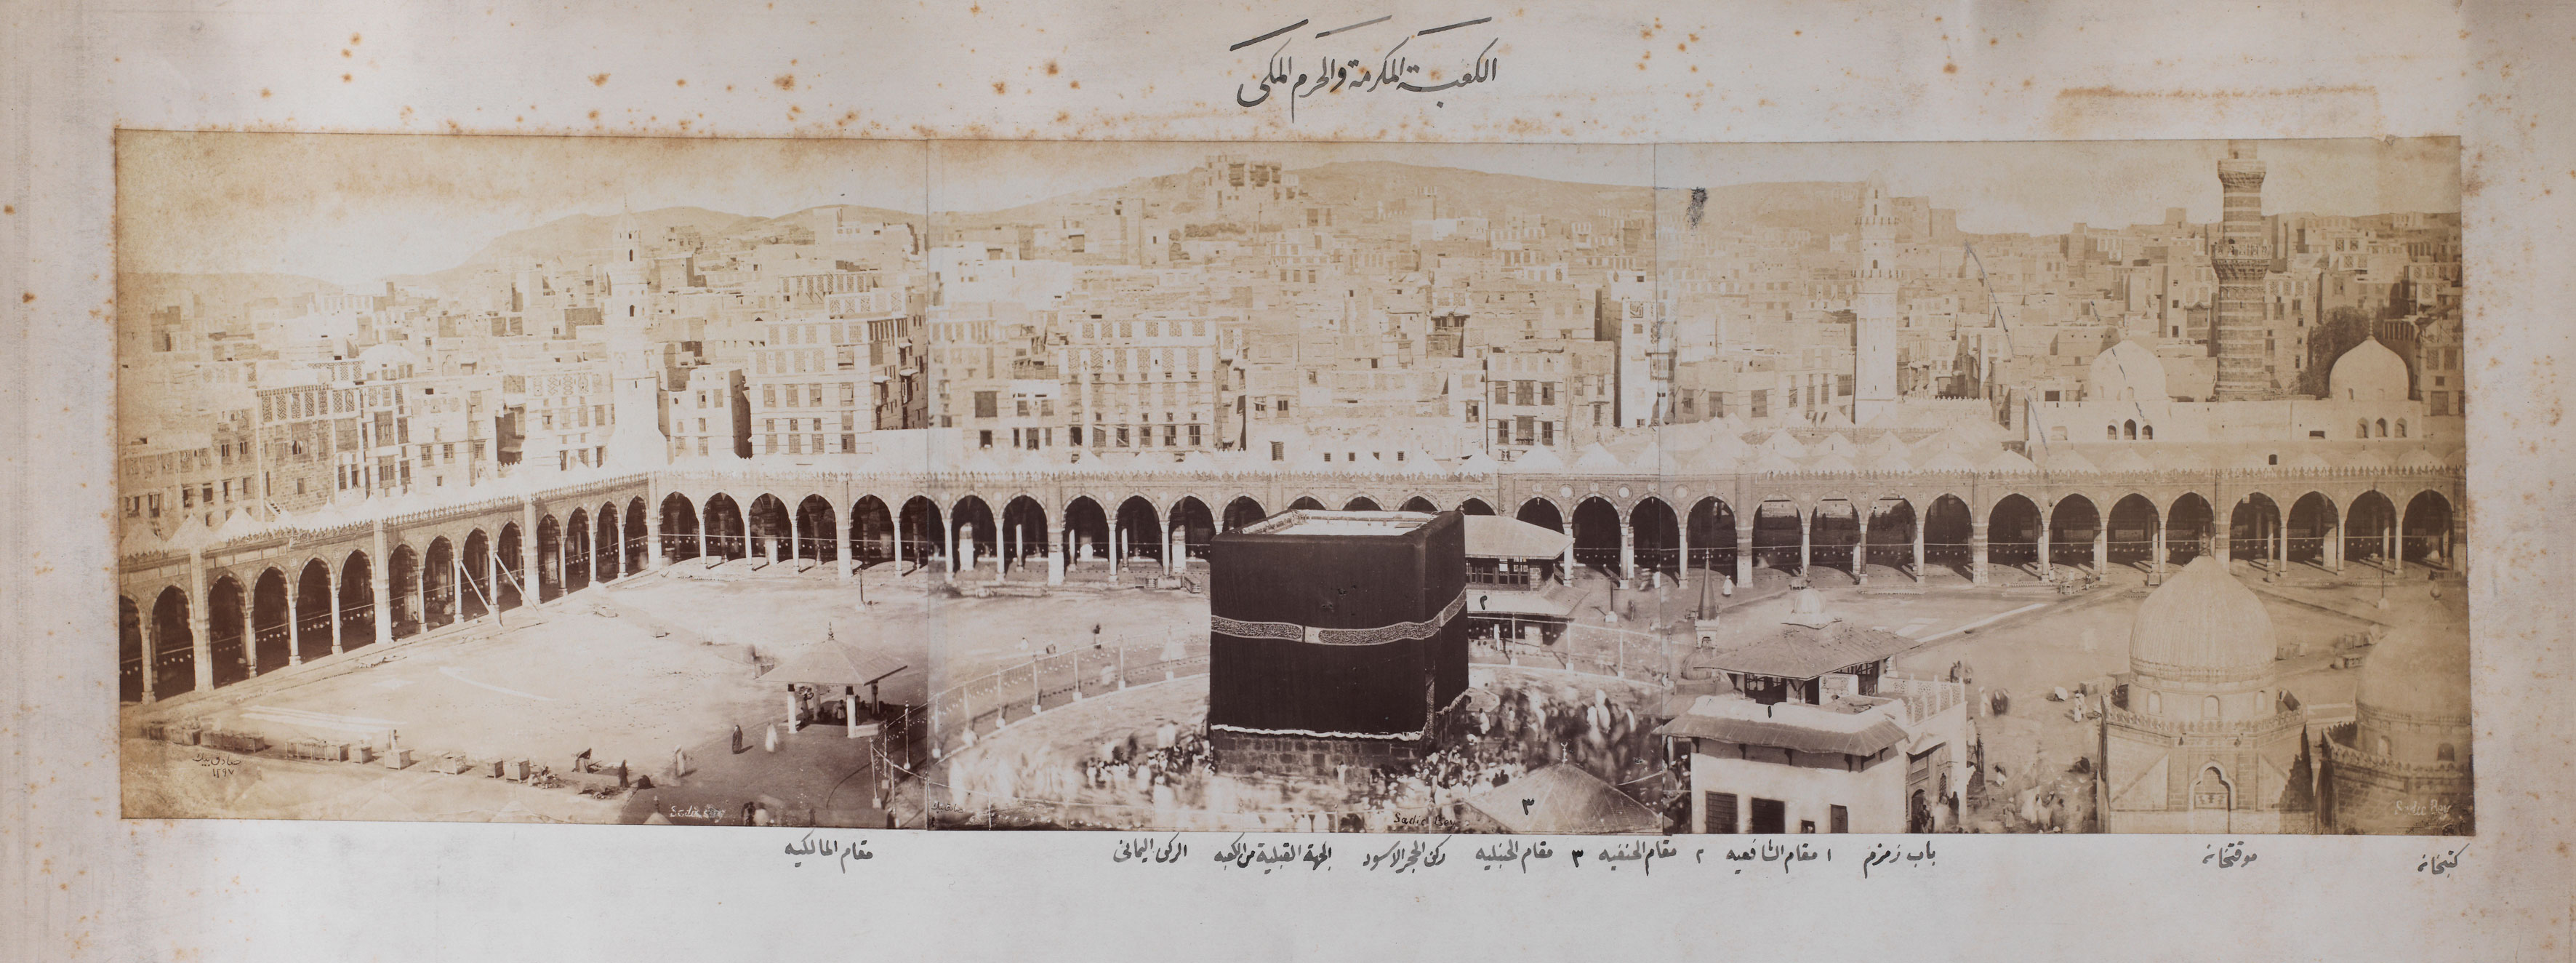 The honoured Ka'bah and the Meccan sanctuary' by Sadiq Bey, the first photographer of Mecca and Medina